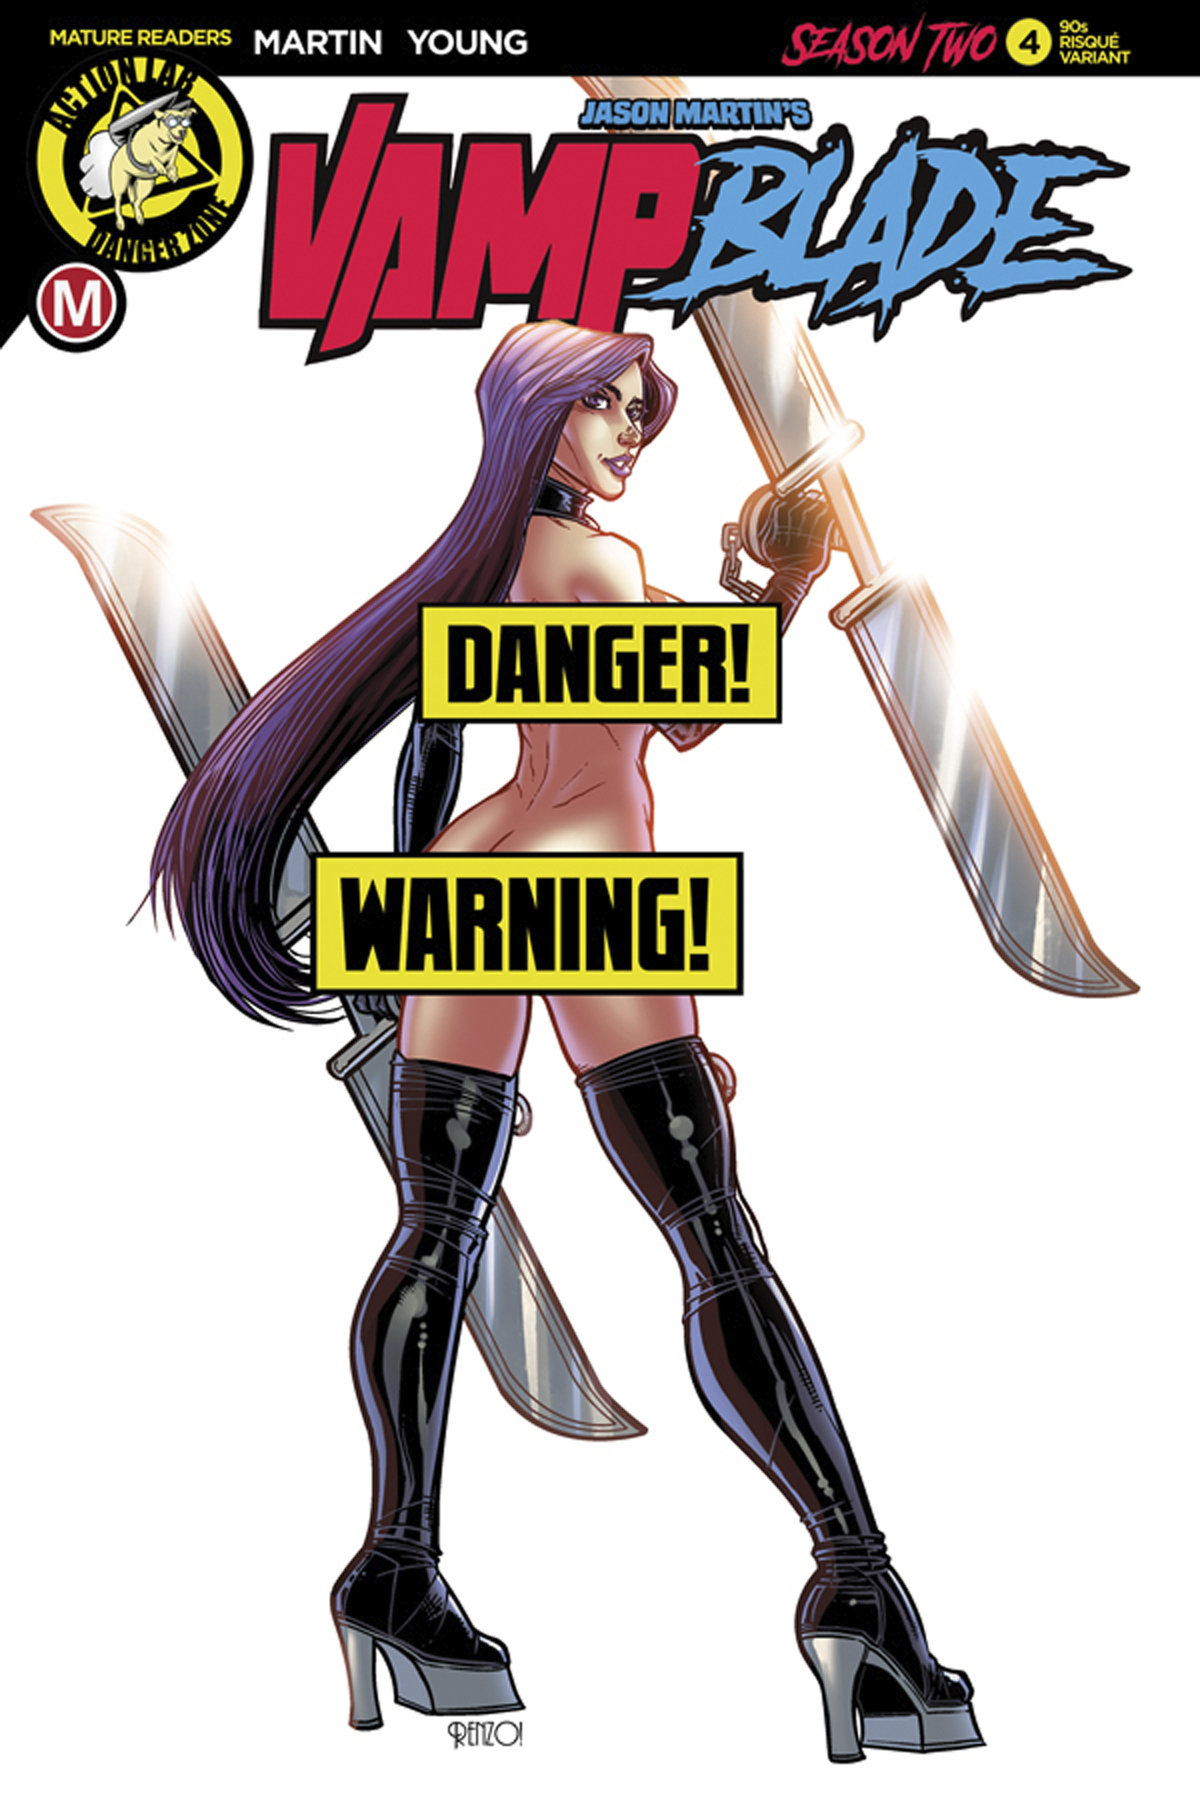 VAMPBLADE SEASON TWO #4 CVR F RODRIGUEZ 90S VAR RISQUE (MR)